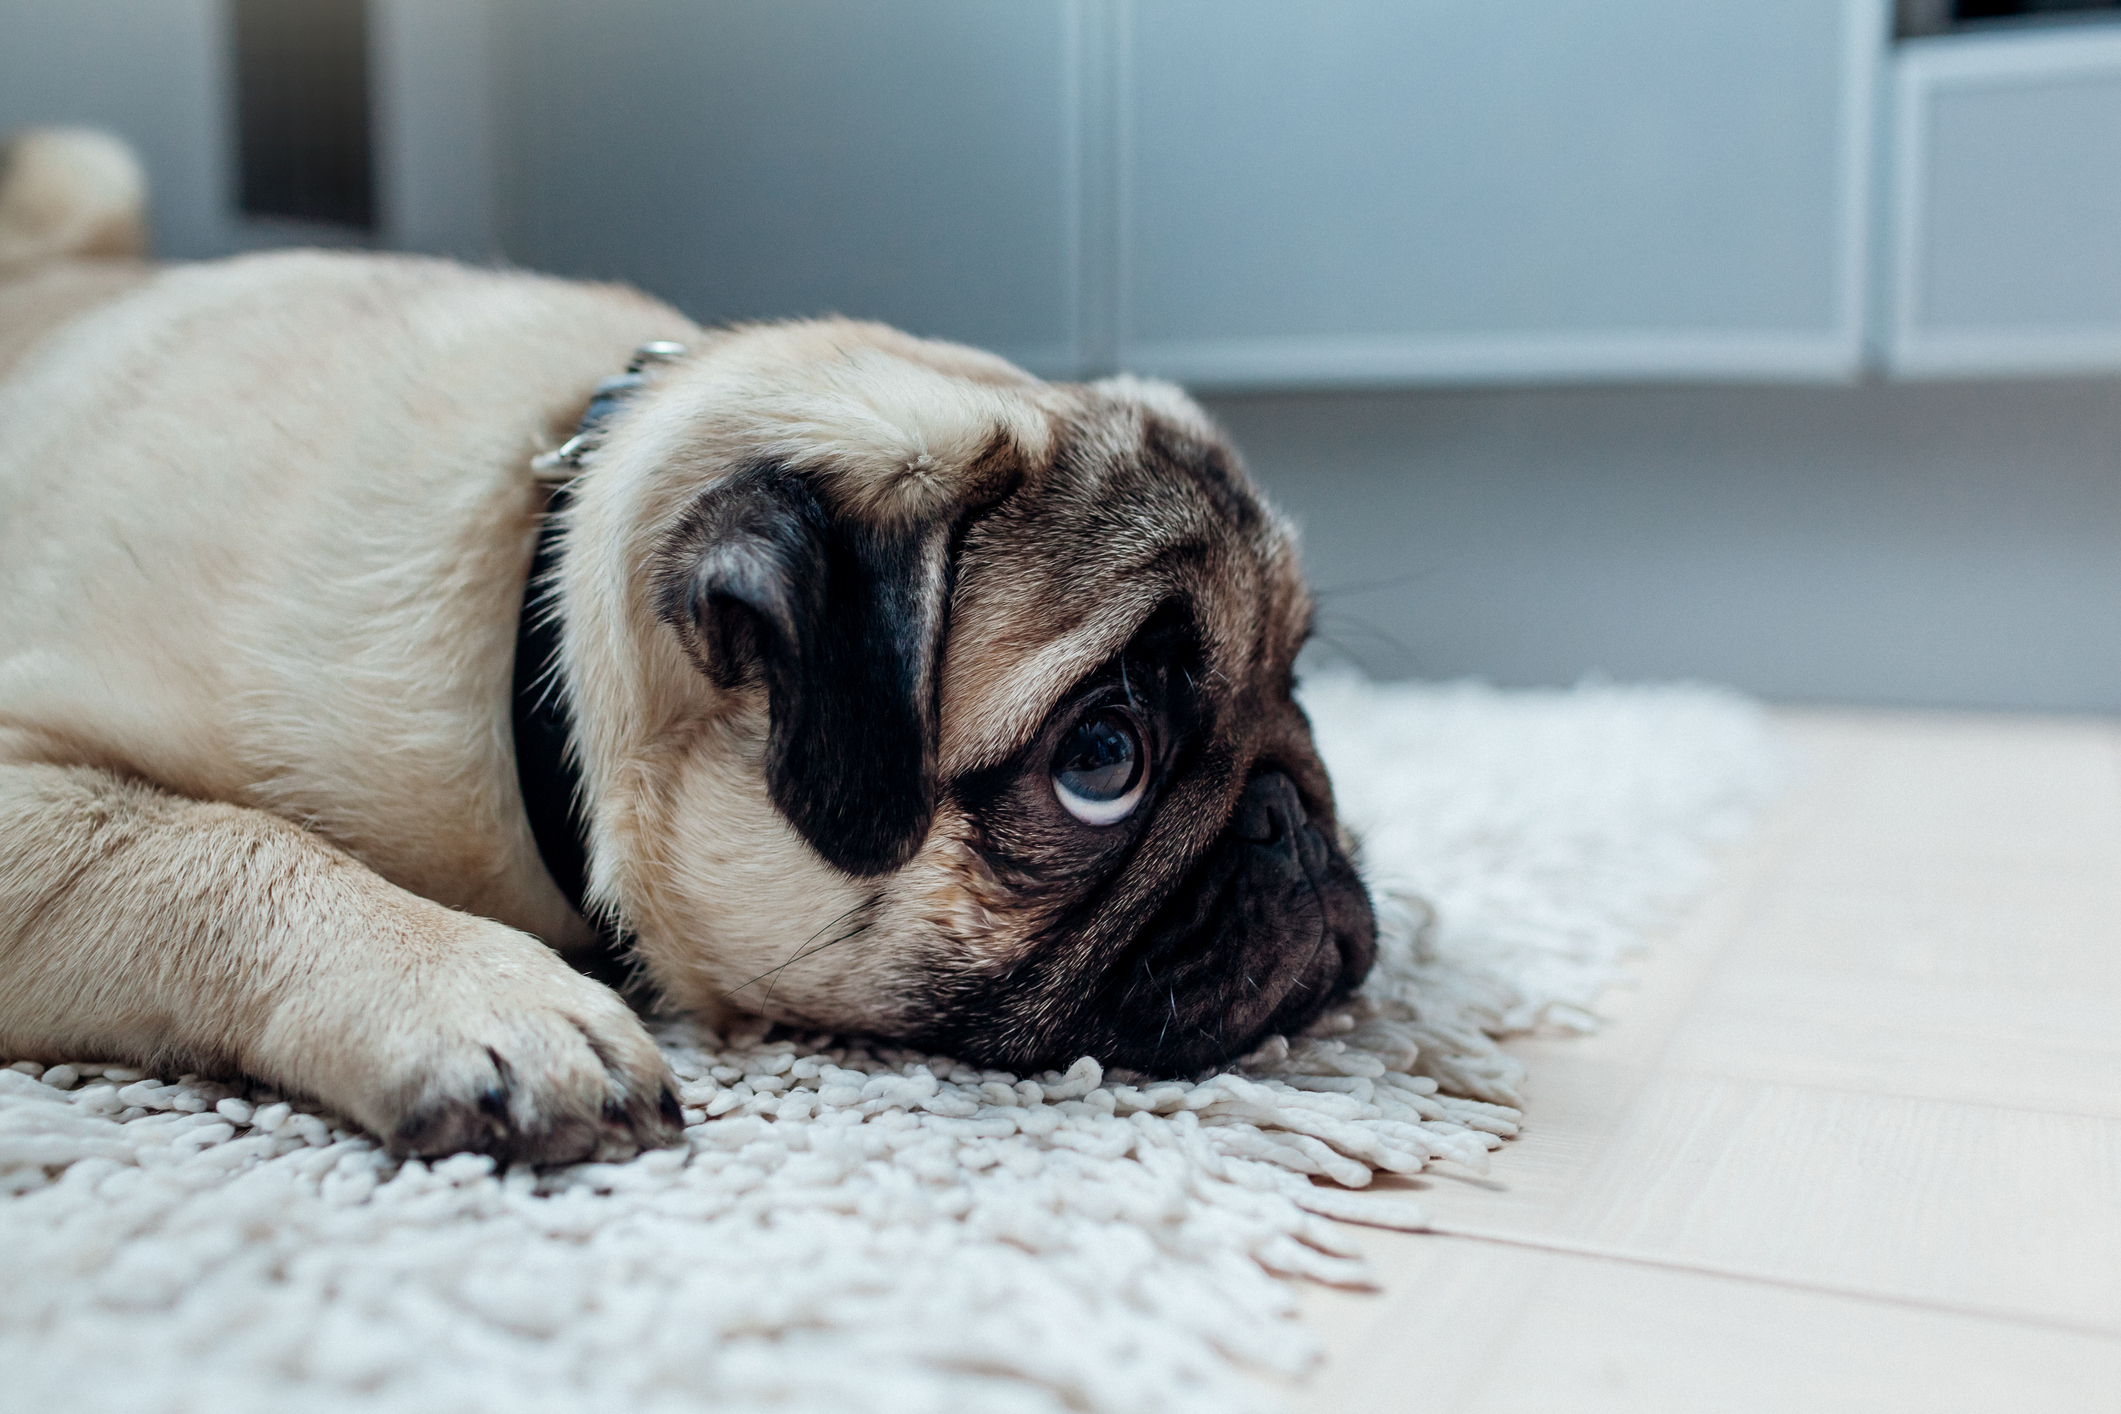 Sad pug dog was punished and left alone on the kitchen